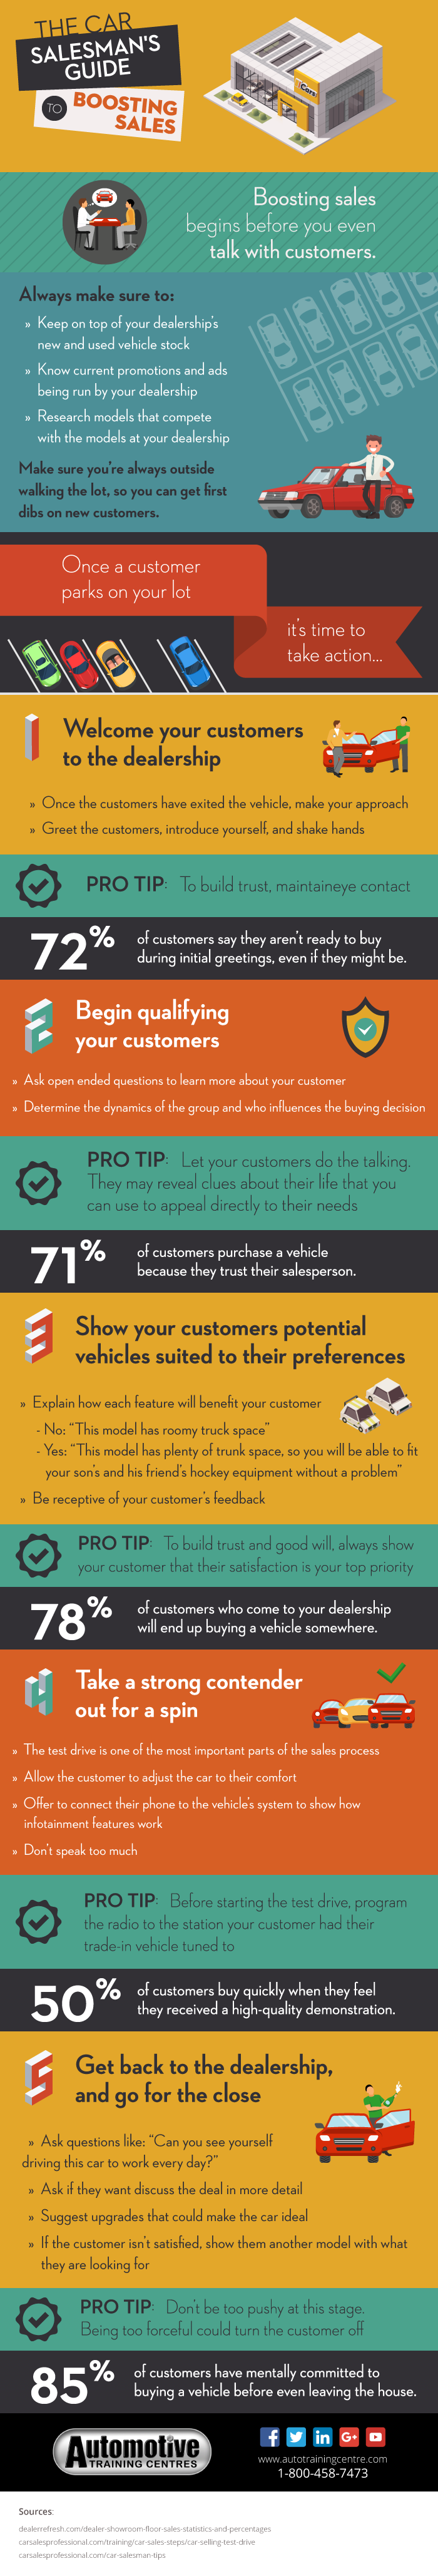 ATC Toronto_Infographic_The Car Salesmans Guide to Boosting Sales